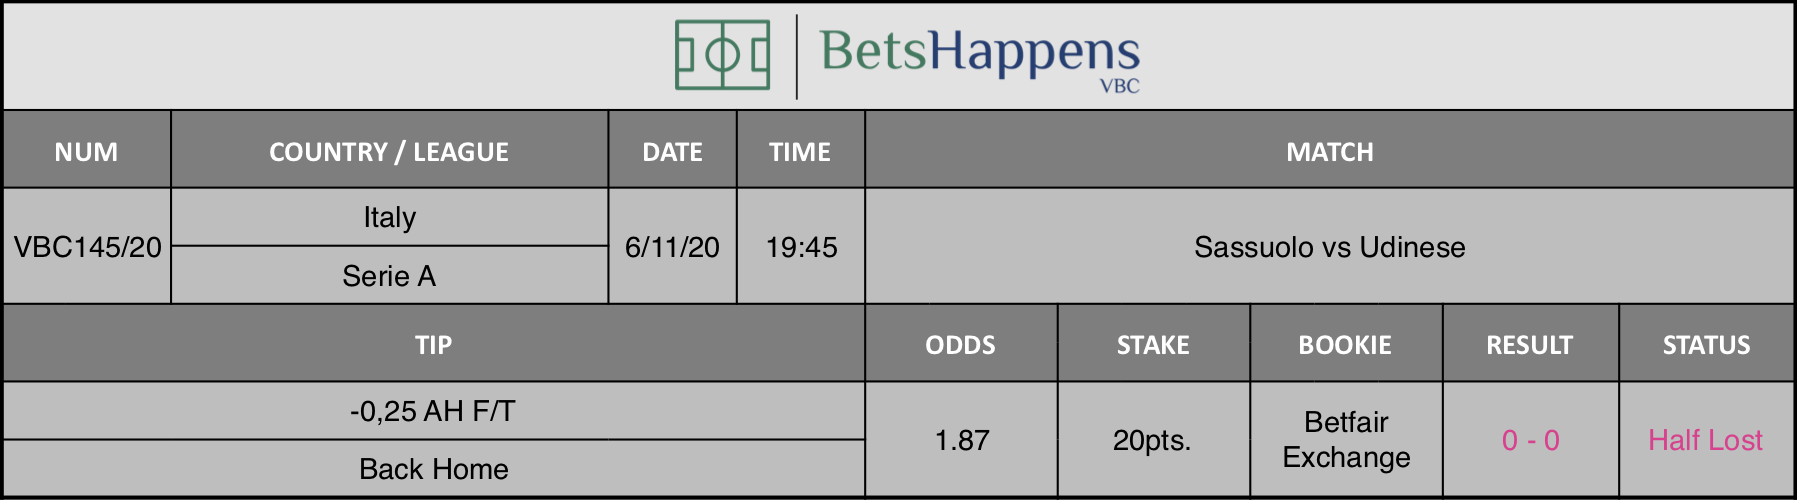 Results of our tip for the Sassuolo vs Udinese match where -0,25 AH F/T Back Home is recommended.